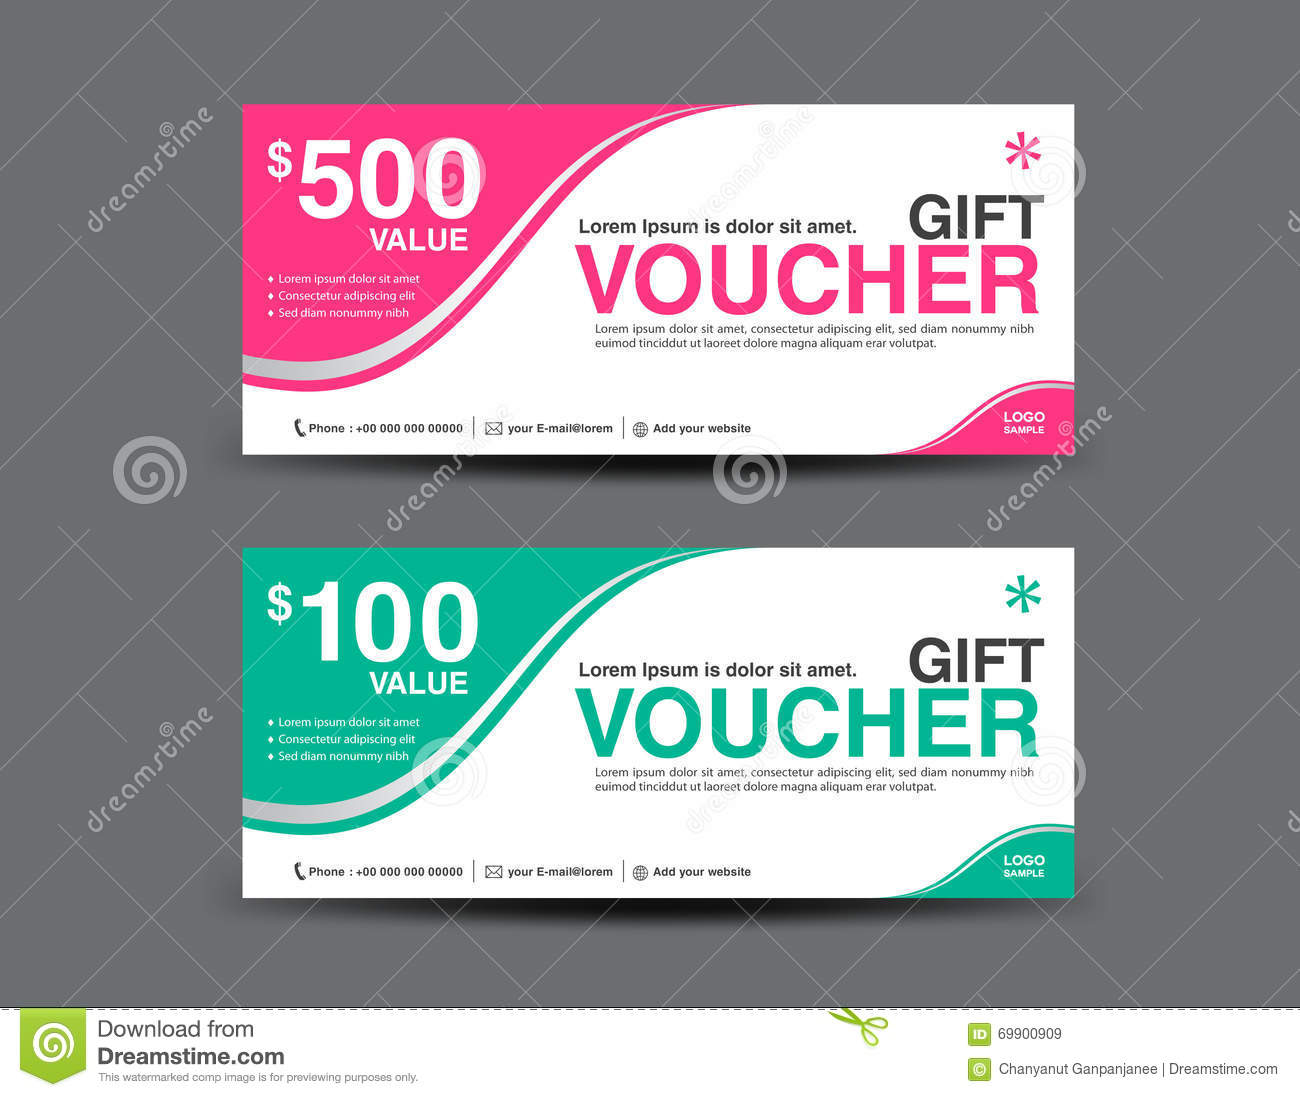 Gold gift voucher template coupon design gift certificate stock gift voucher template coupon designticketbackground design royalty free stock images xflitez Image collections